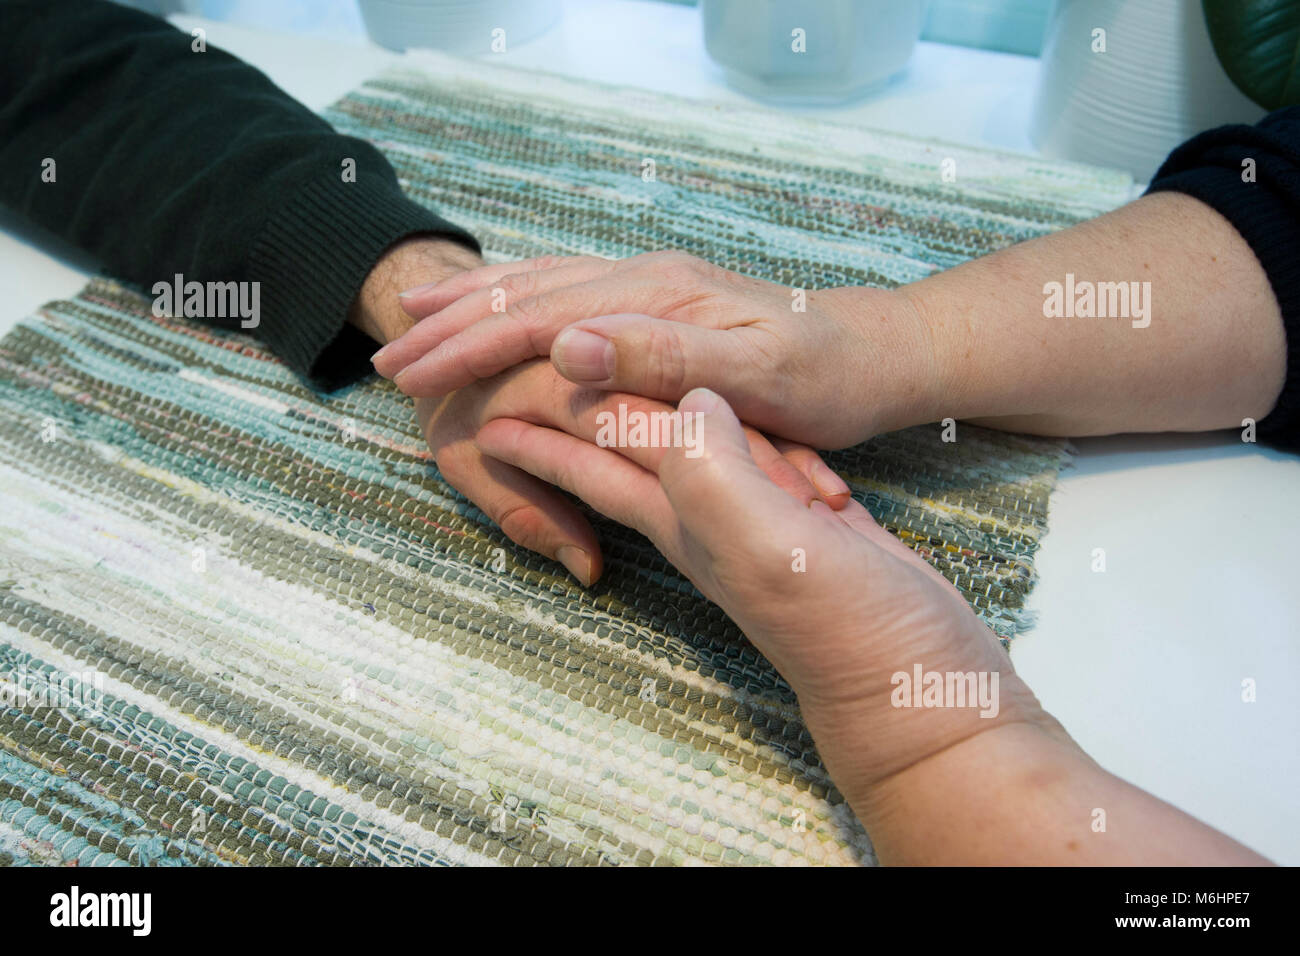 A helping hand when someone needs human proximity, Upplands Väsby, Sweden. - Stock Image